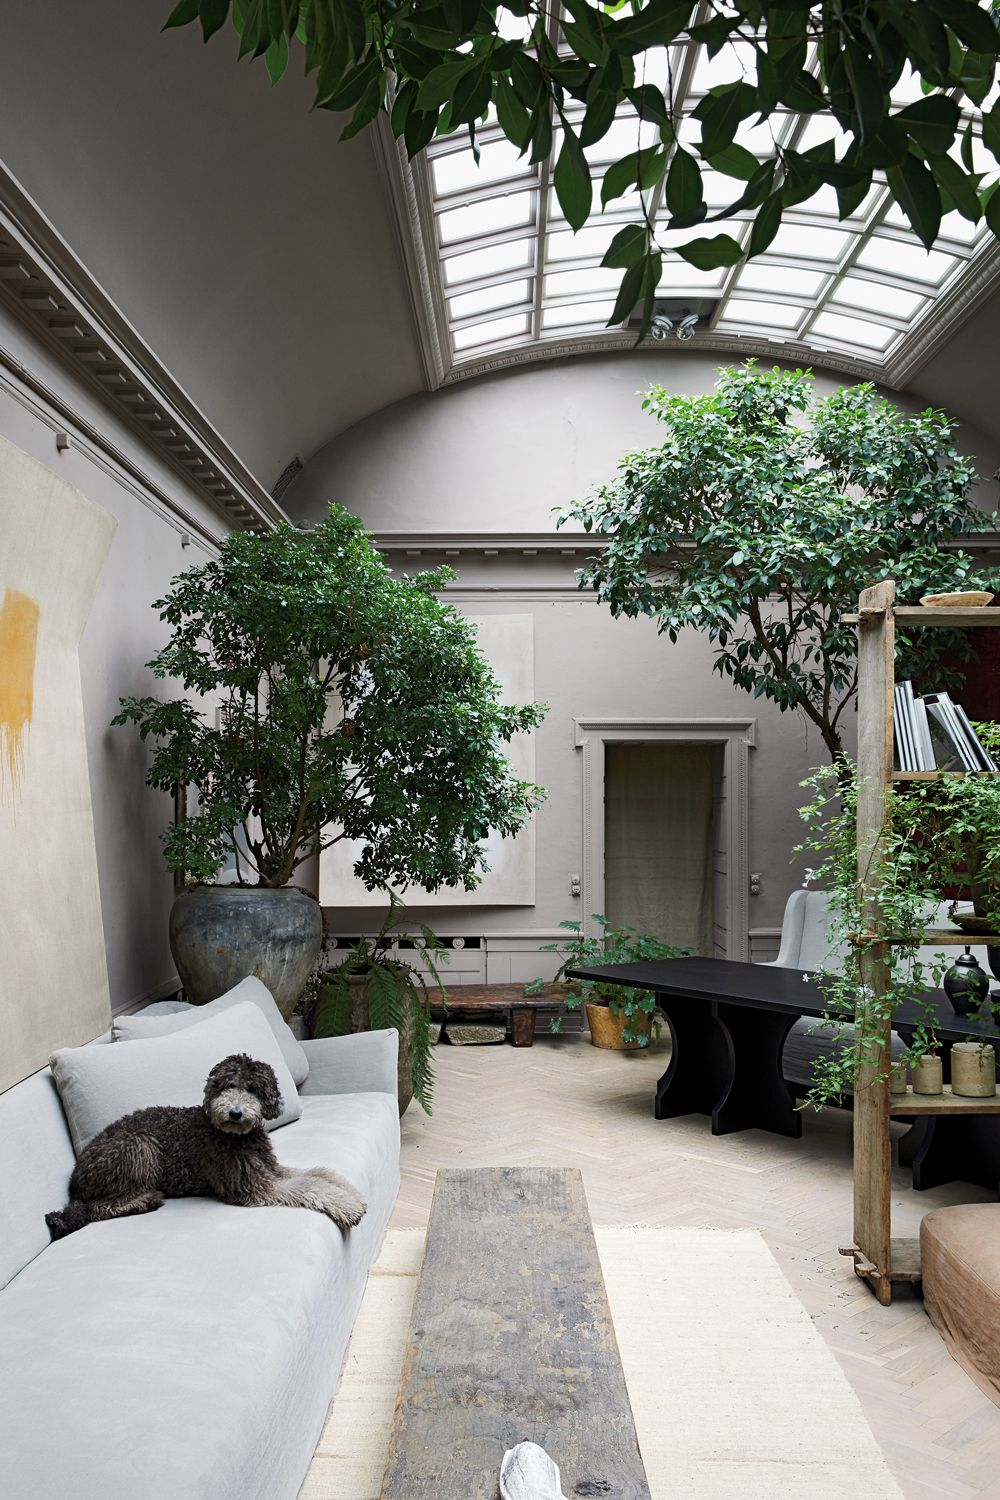 How to bring the outdoors in: 23 fun and modern ways to embrace the outdoors in your home